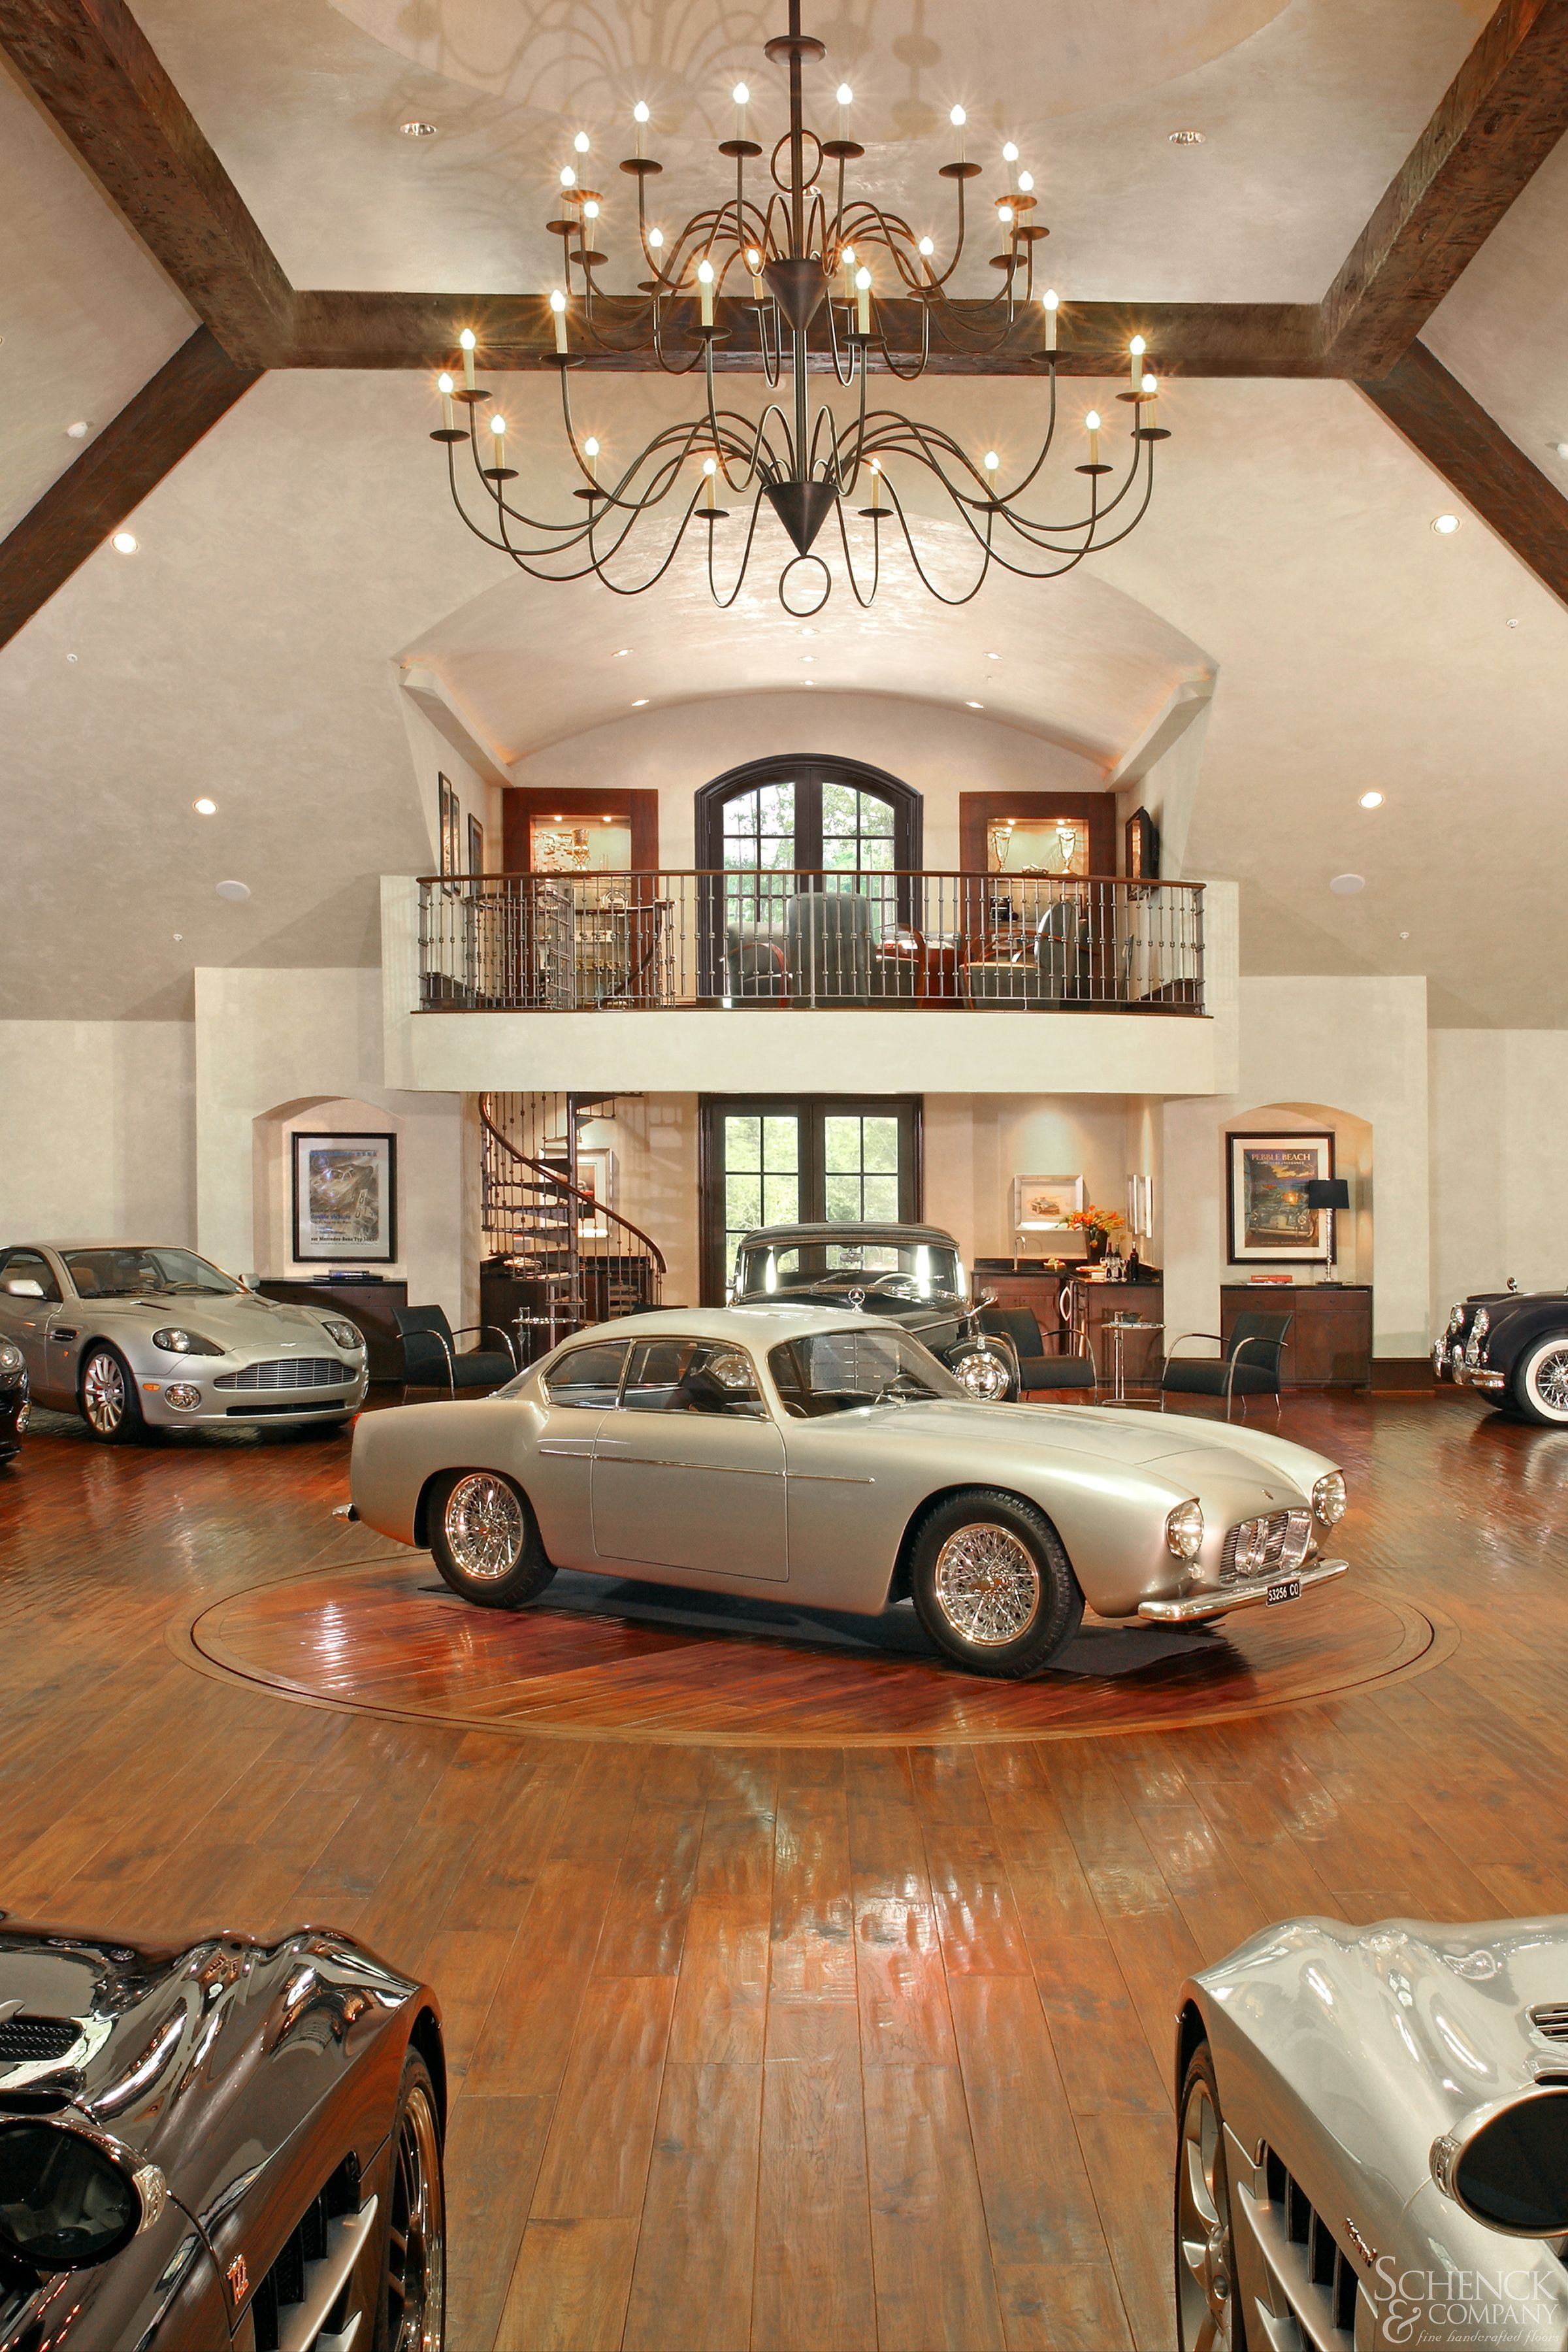 Amazing Hand Scraped Floor For An Amazing Car Collection With So